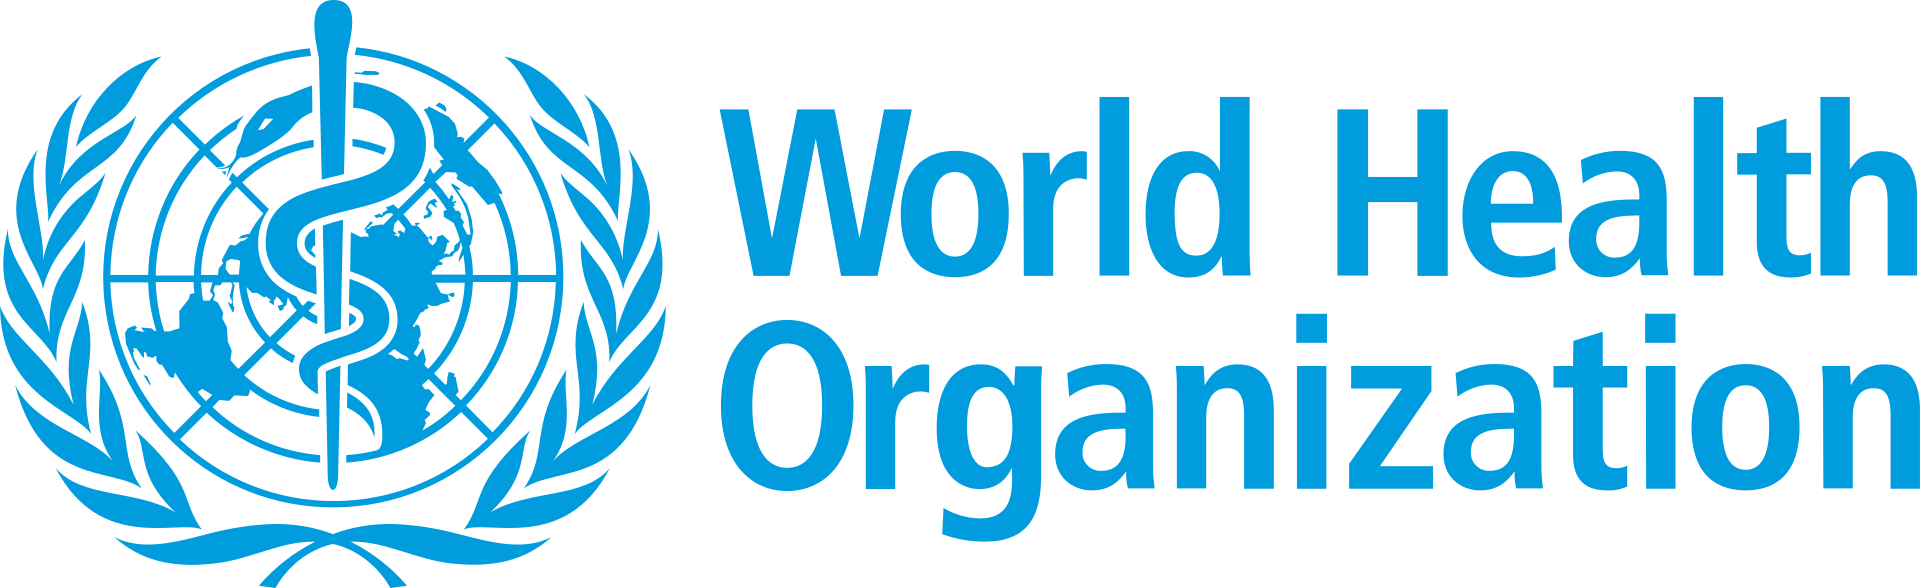 World Health Organzation (WHO)